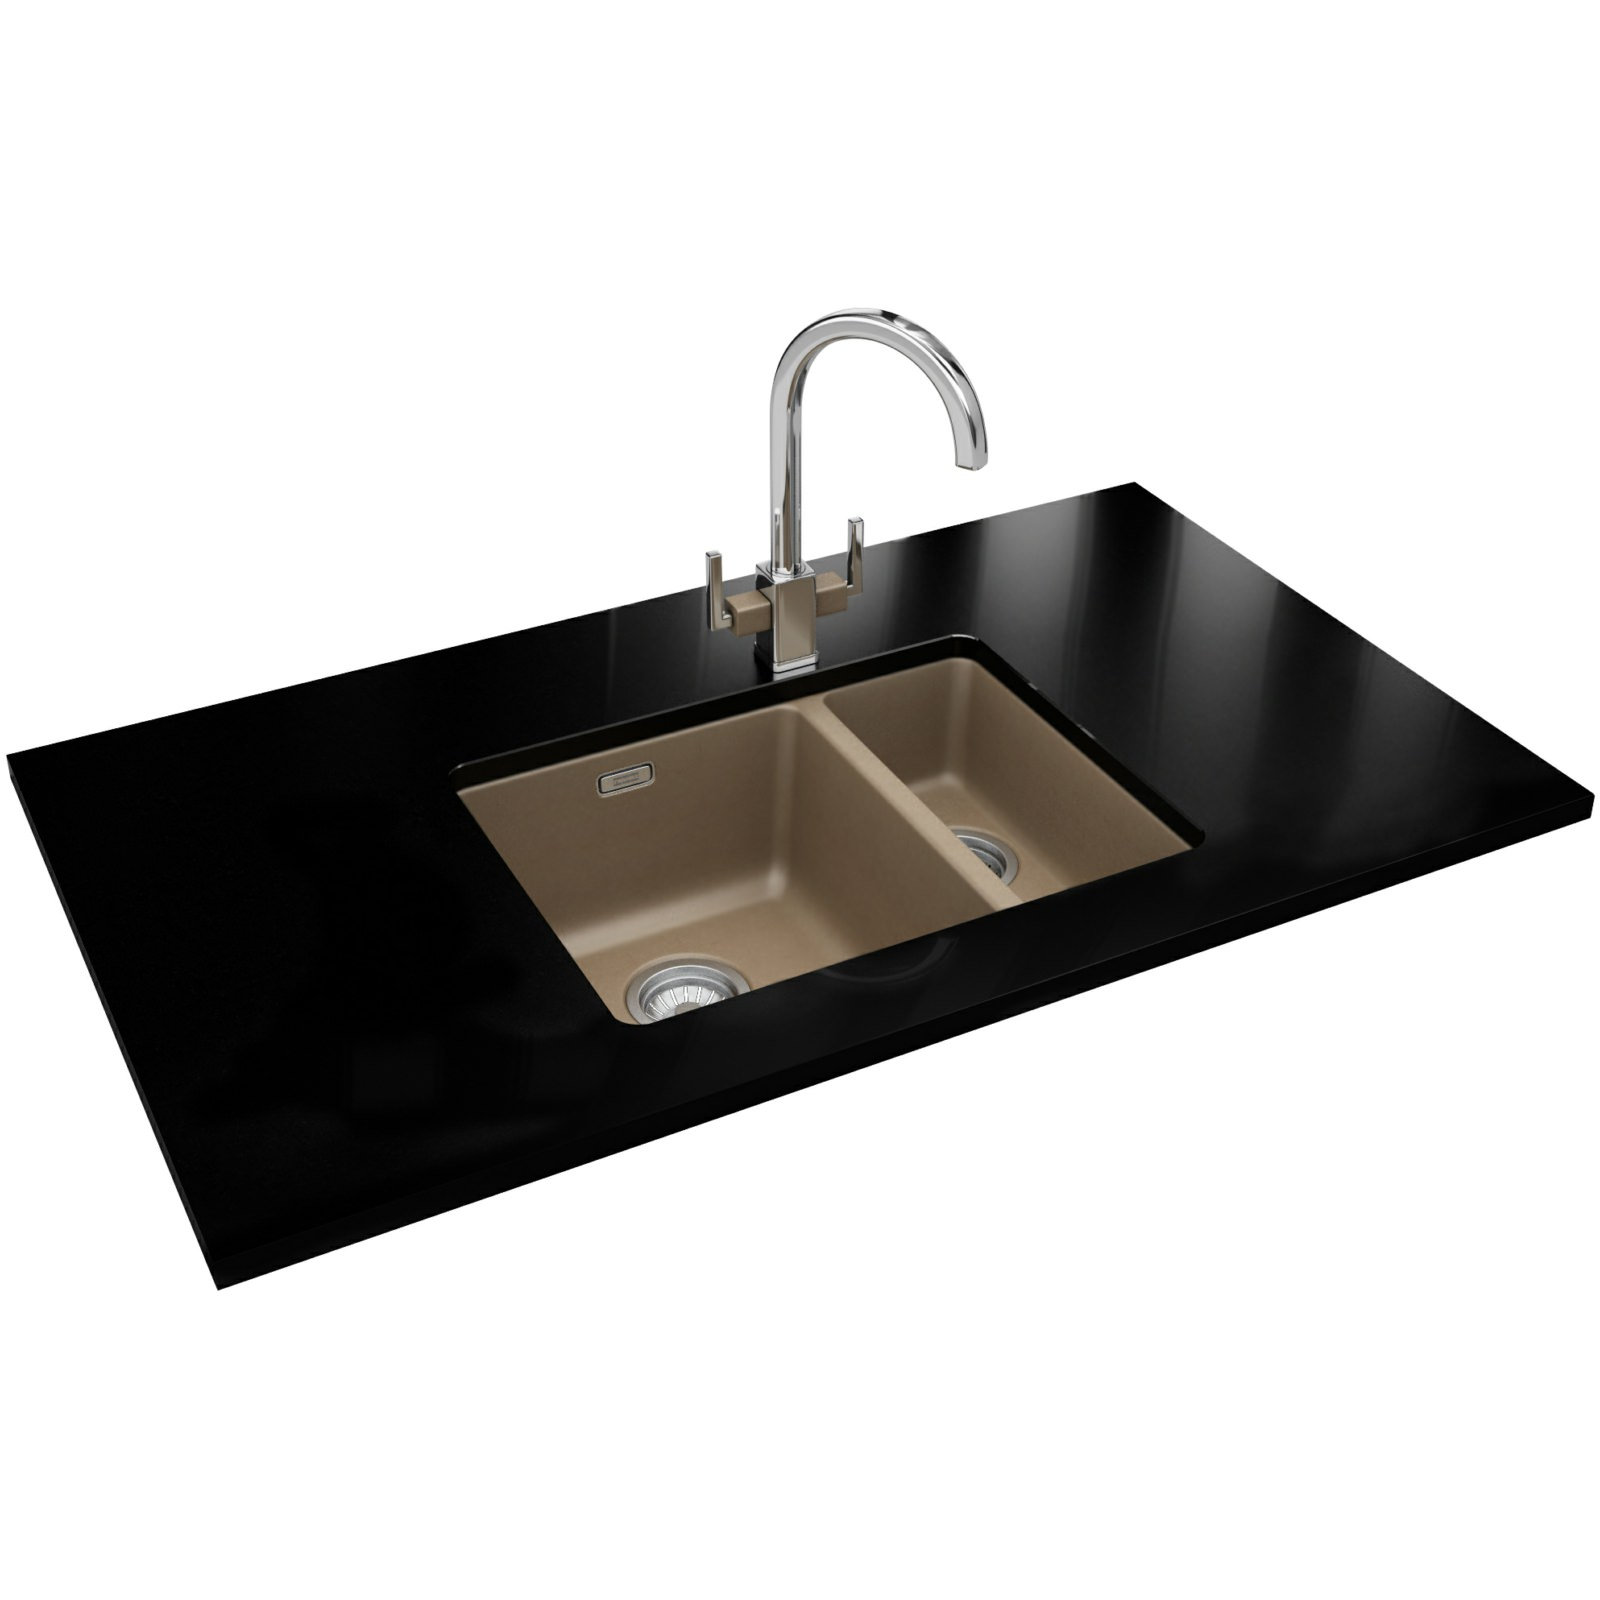 Franke Sink Kubus : Franke Kubus Designer Pack KBG 160 Fragranite Oyster Sink And Tap ...